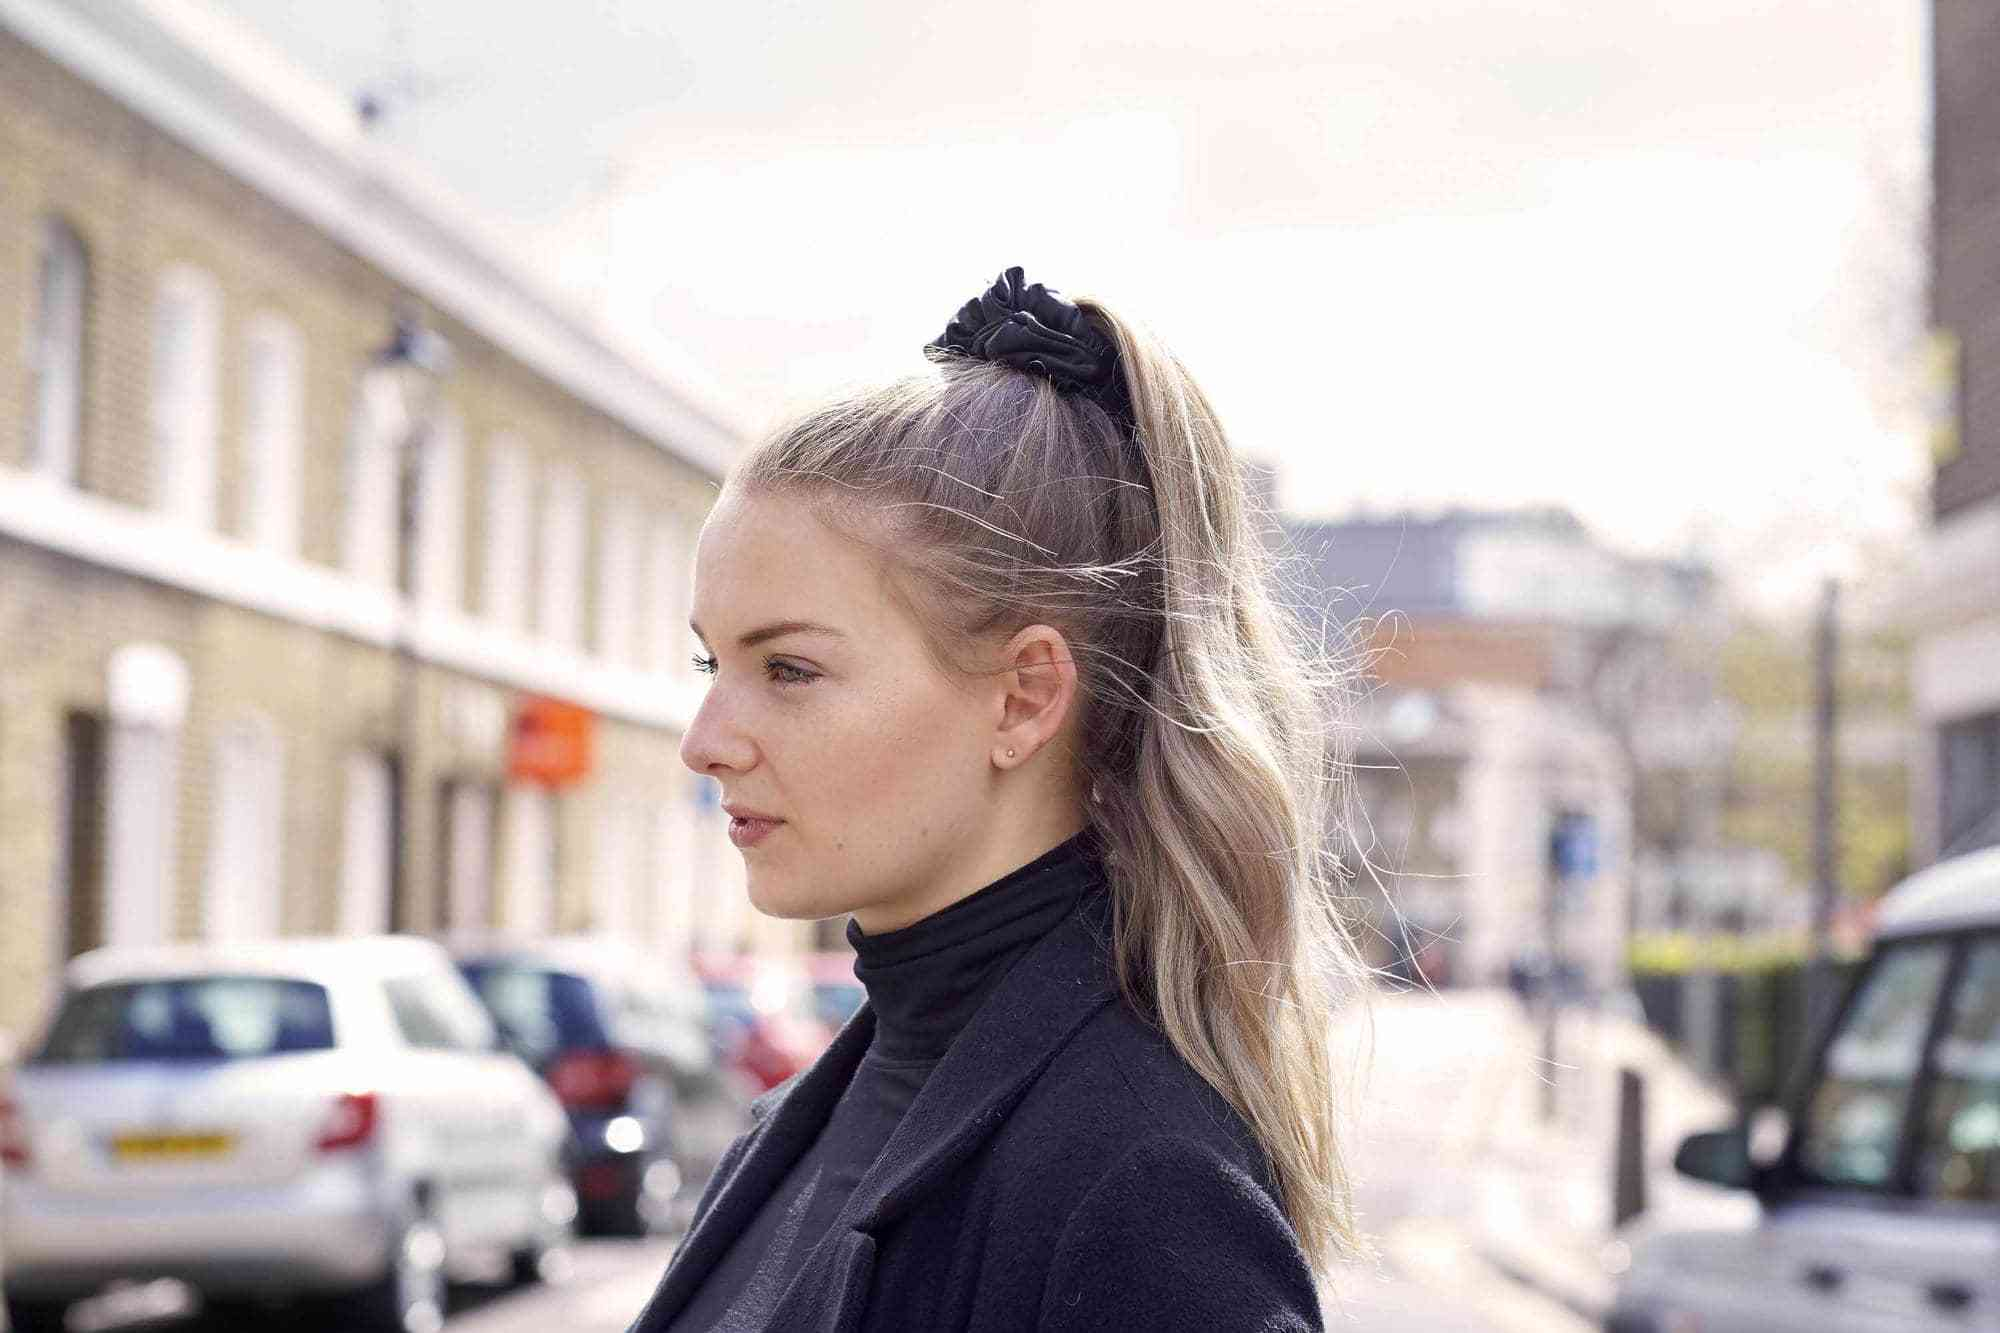 hairstyles 2017 with tight ponytails